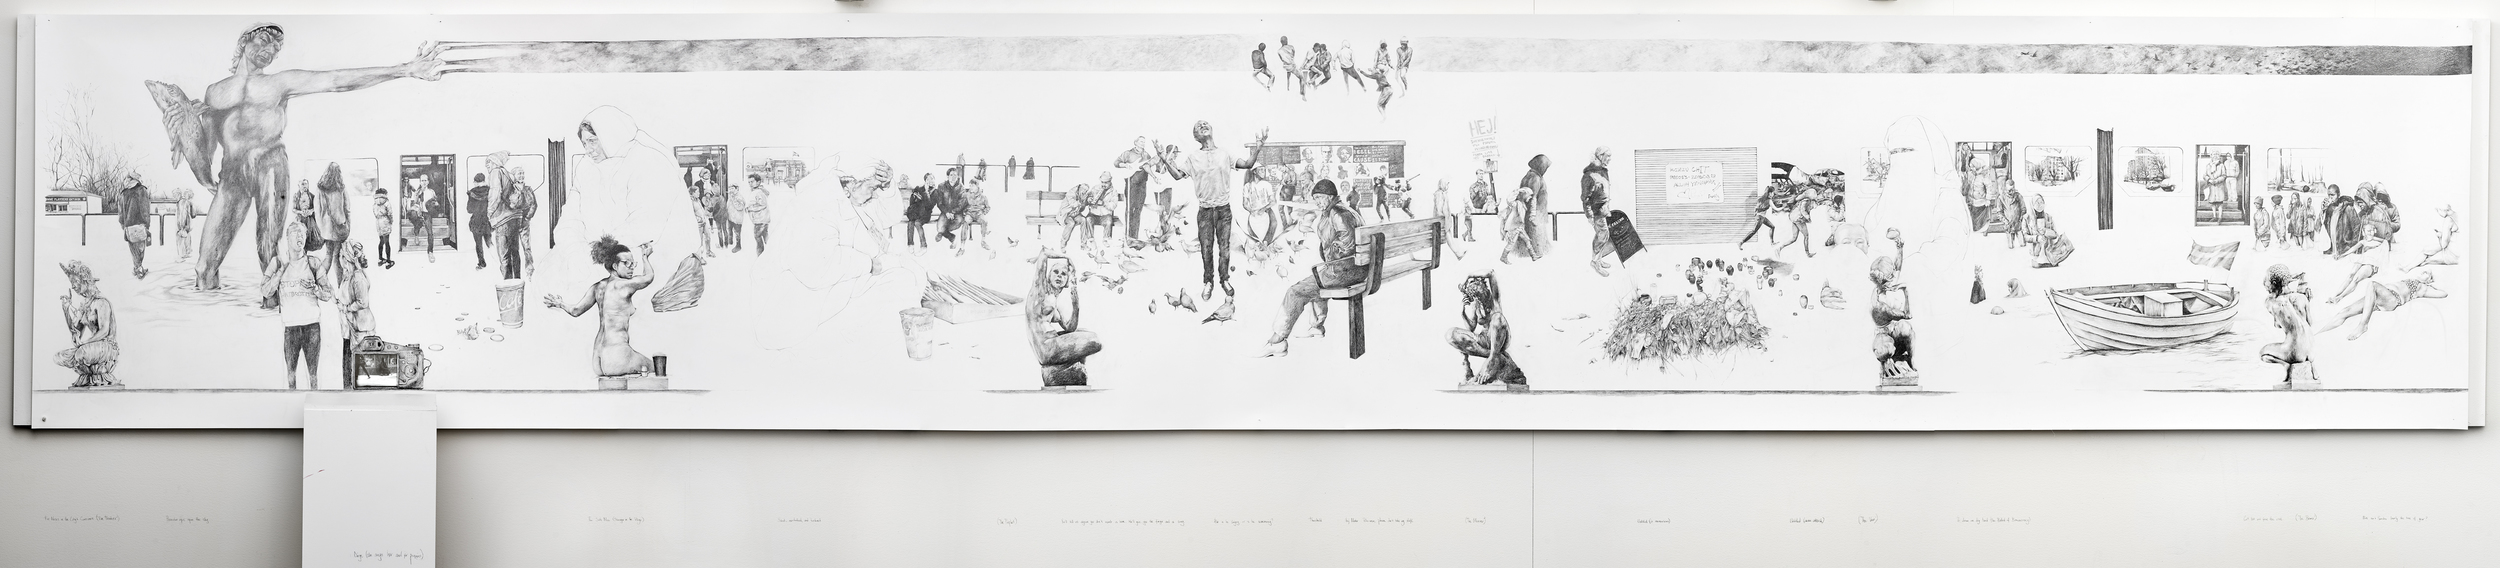 Tramlines  Pencil on paper (mounted) and wall, with looped animation projection  700cm x 200cm  2015  Photo: Hendrik Zeitler. Venue: Bla Stallet Konsthallen, Angered, Gothenburg